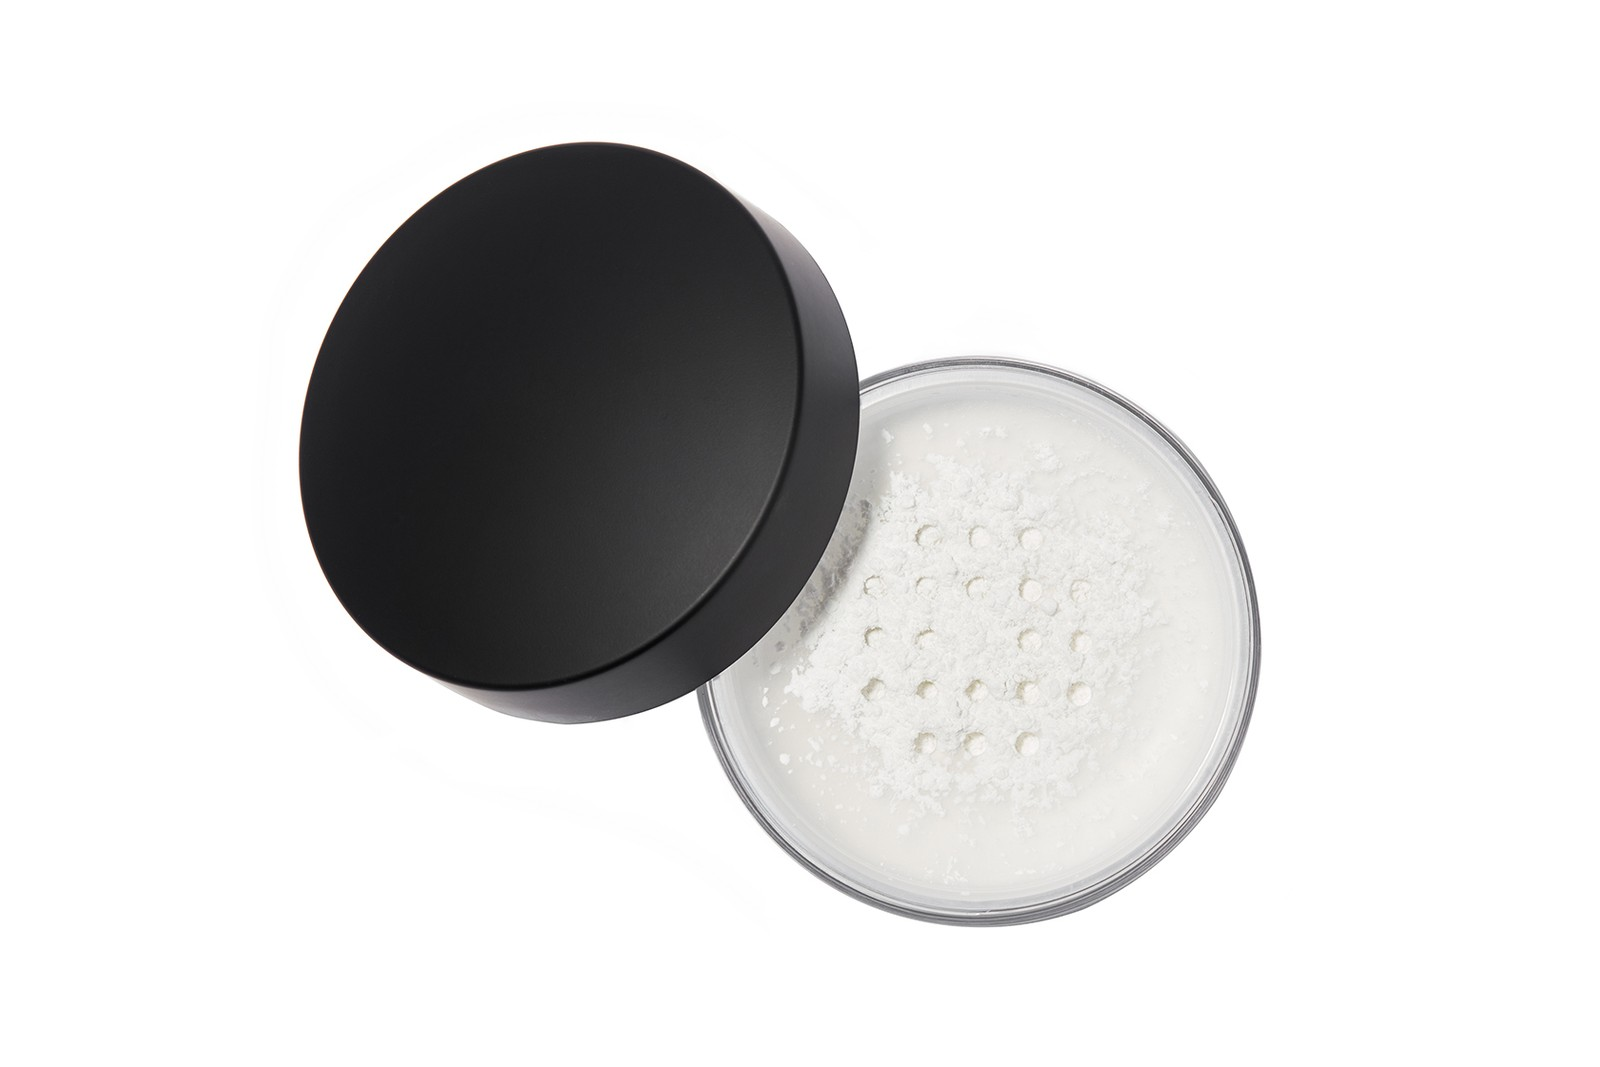 anastasia beverly hills abh cosmetics luminous liquid foundation loose setting powder 50 shades makeup beauty light dark skintone warm neutral cool medium coverage